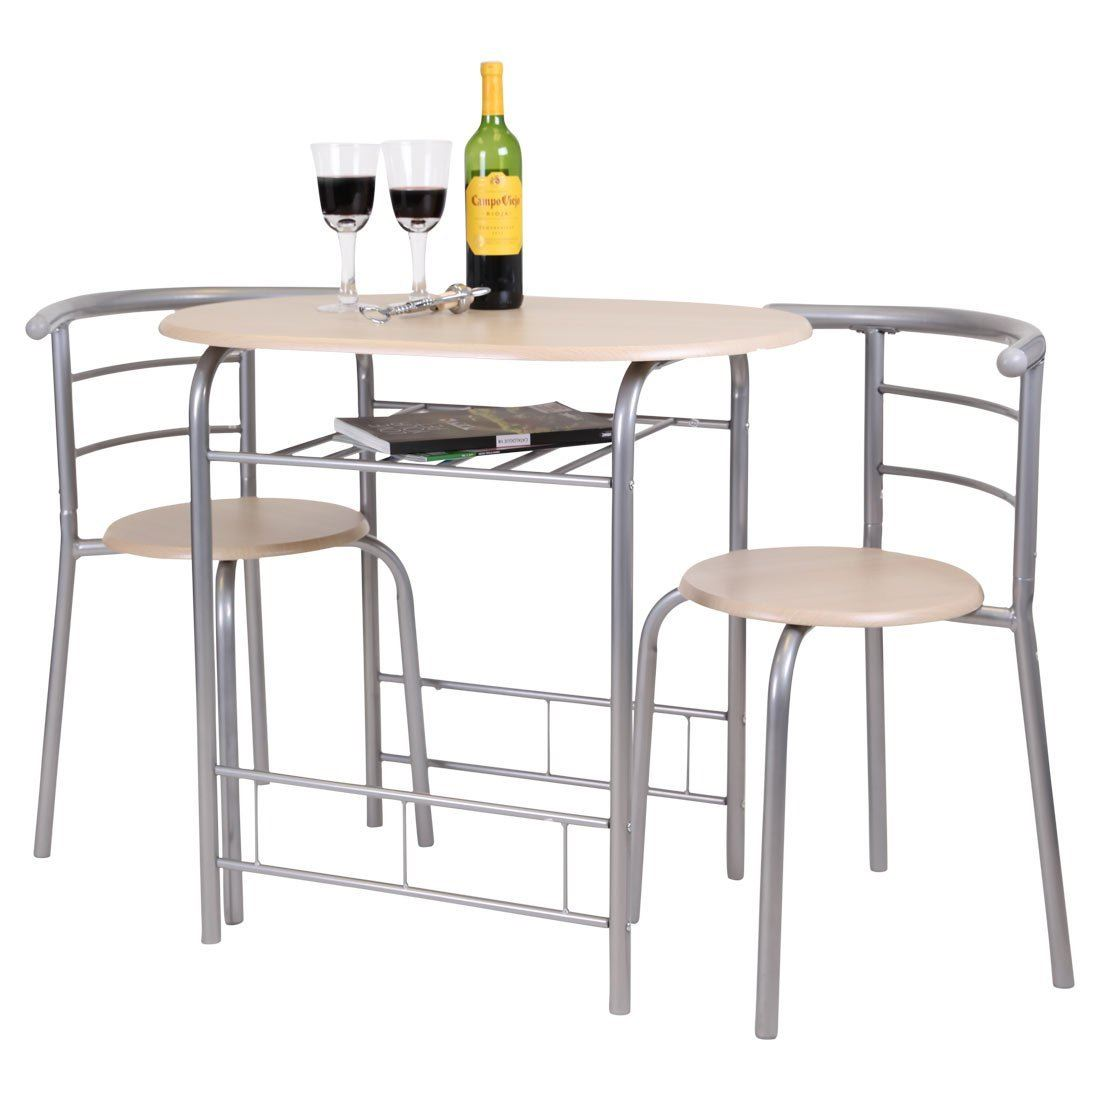 Breakfast Bar Table 2 Chairs Stools Set Dining Room